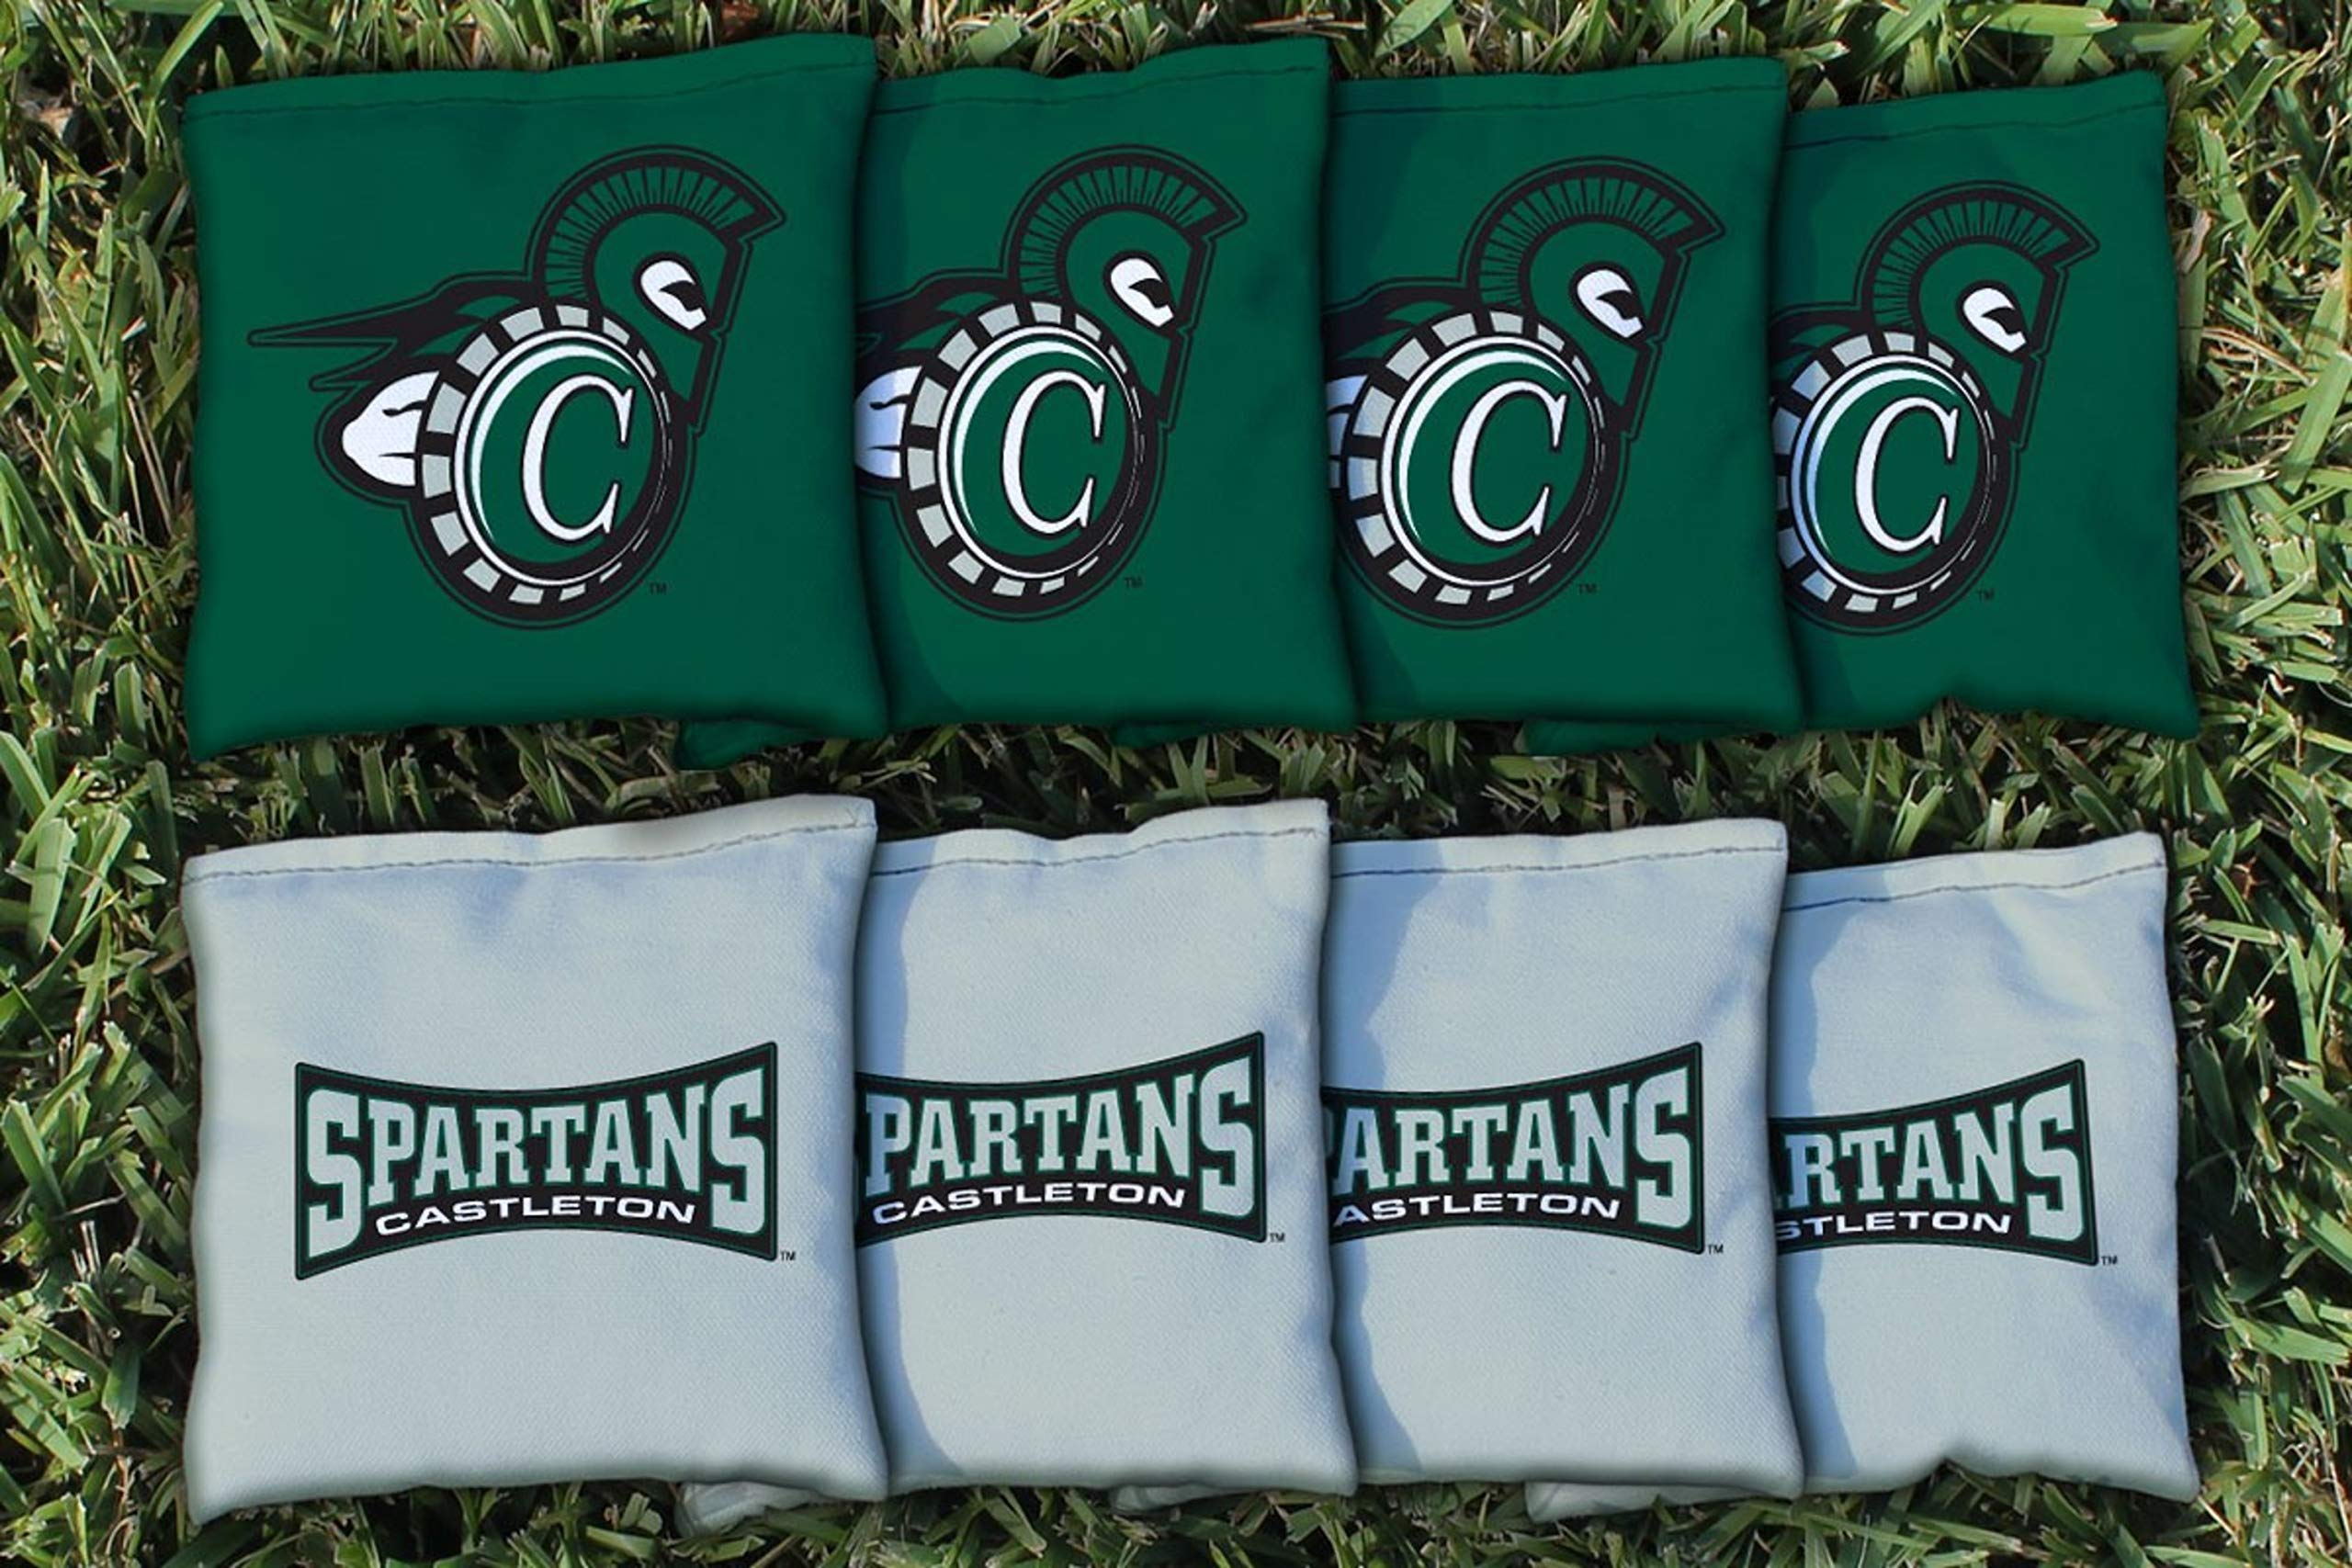 Victory Tailgate NCAA Collegiate Regulation Cornhole Game Bag Set (8 Bags Included, Corn-Filled) - Castleton Spartans by Victory Tailgate